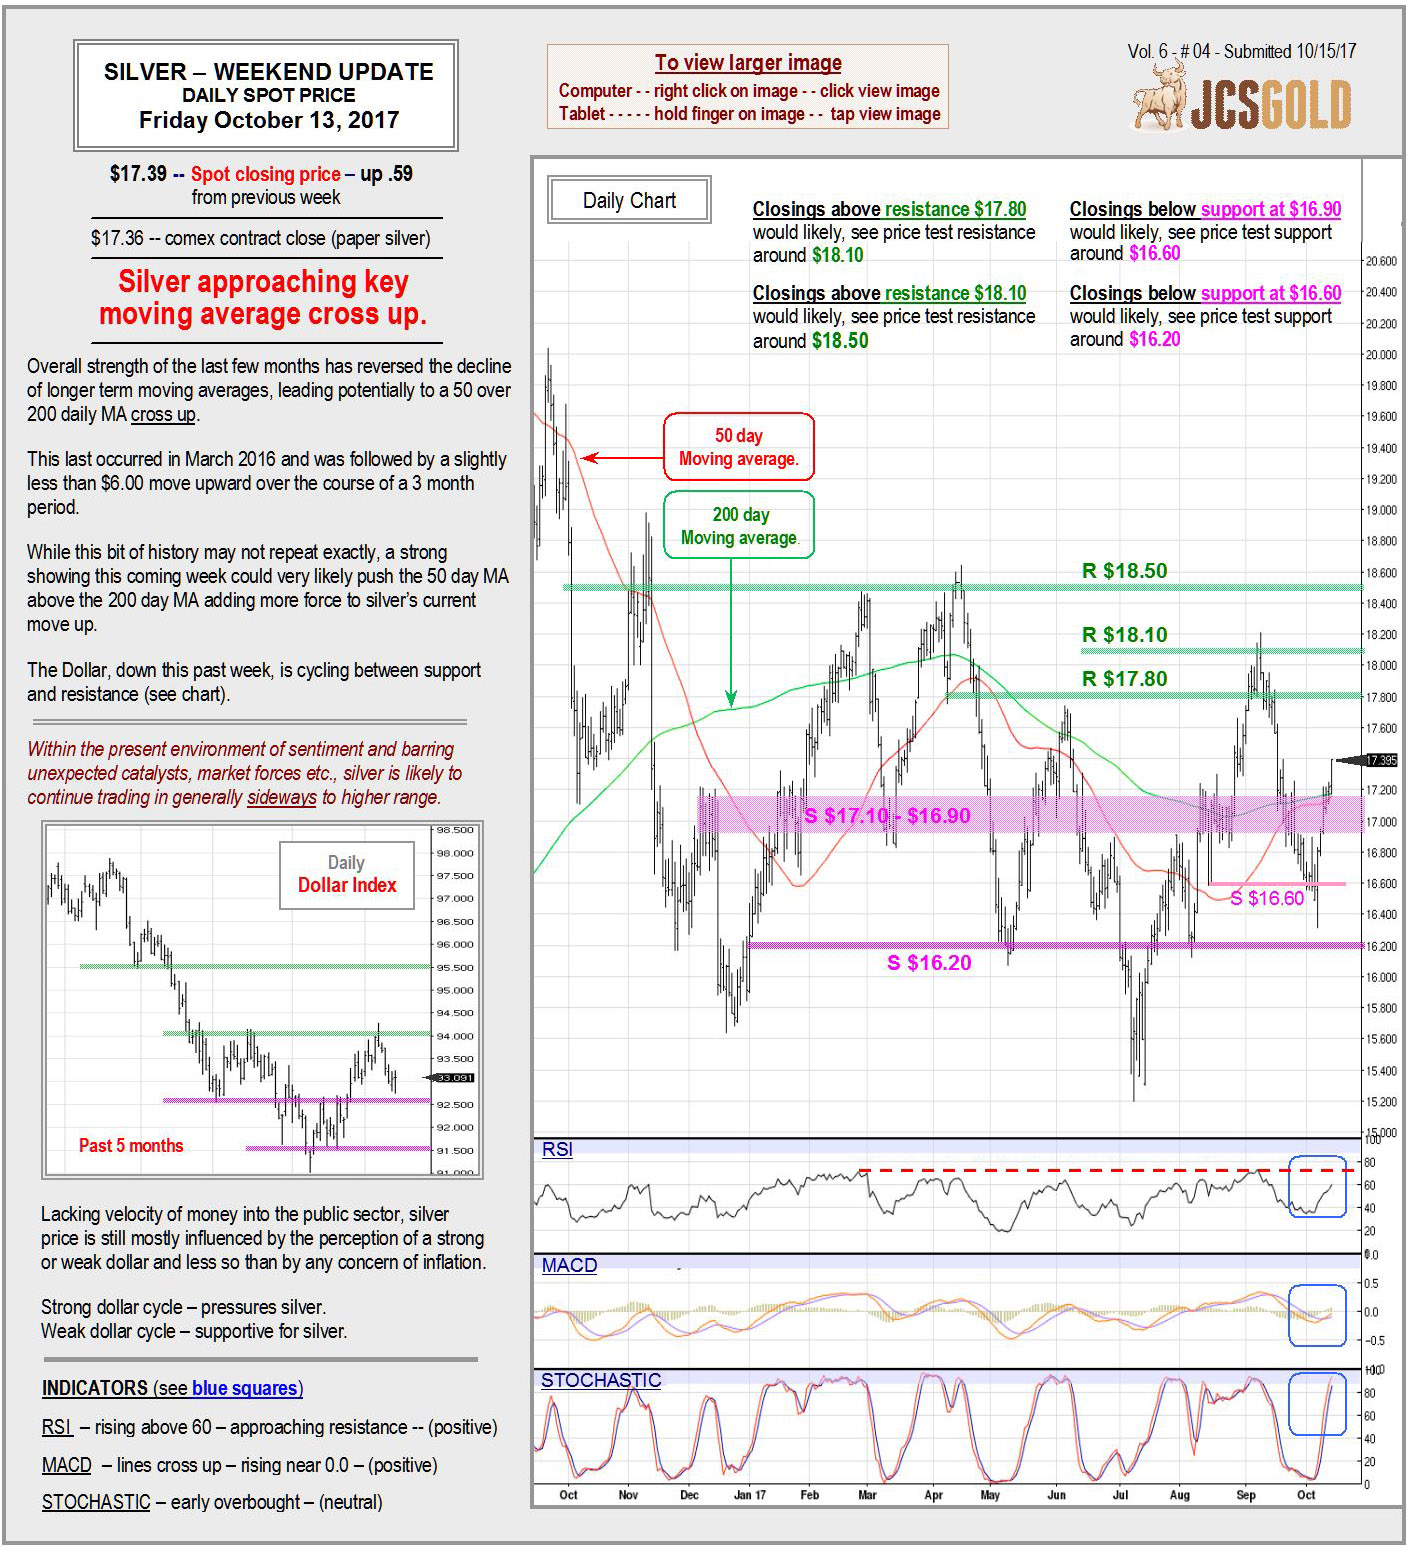 Oct. 13, 2017 chart & commentary